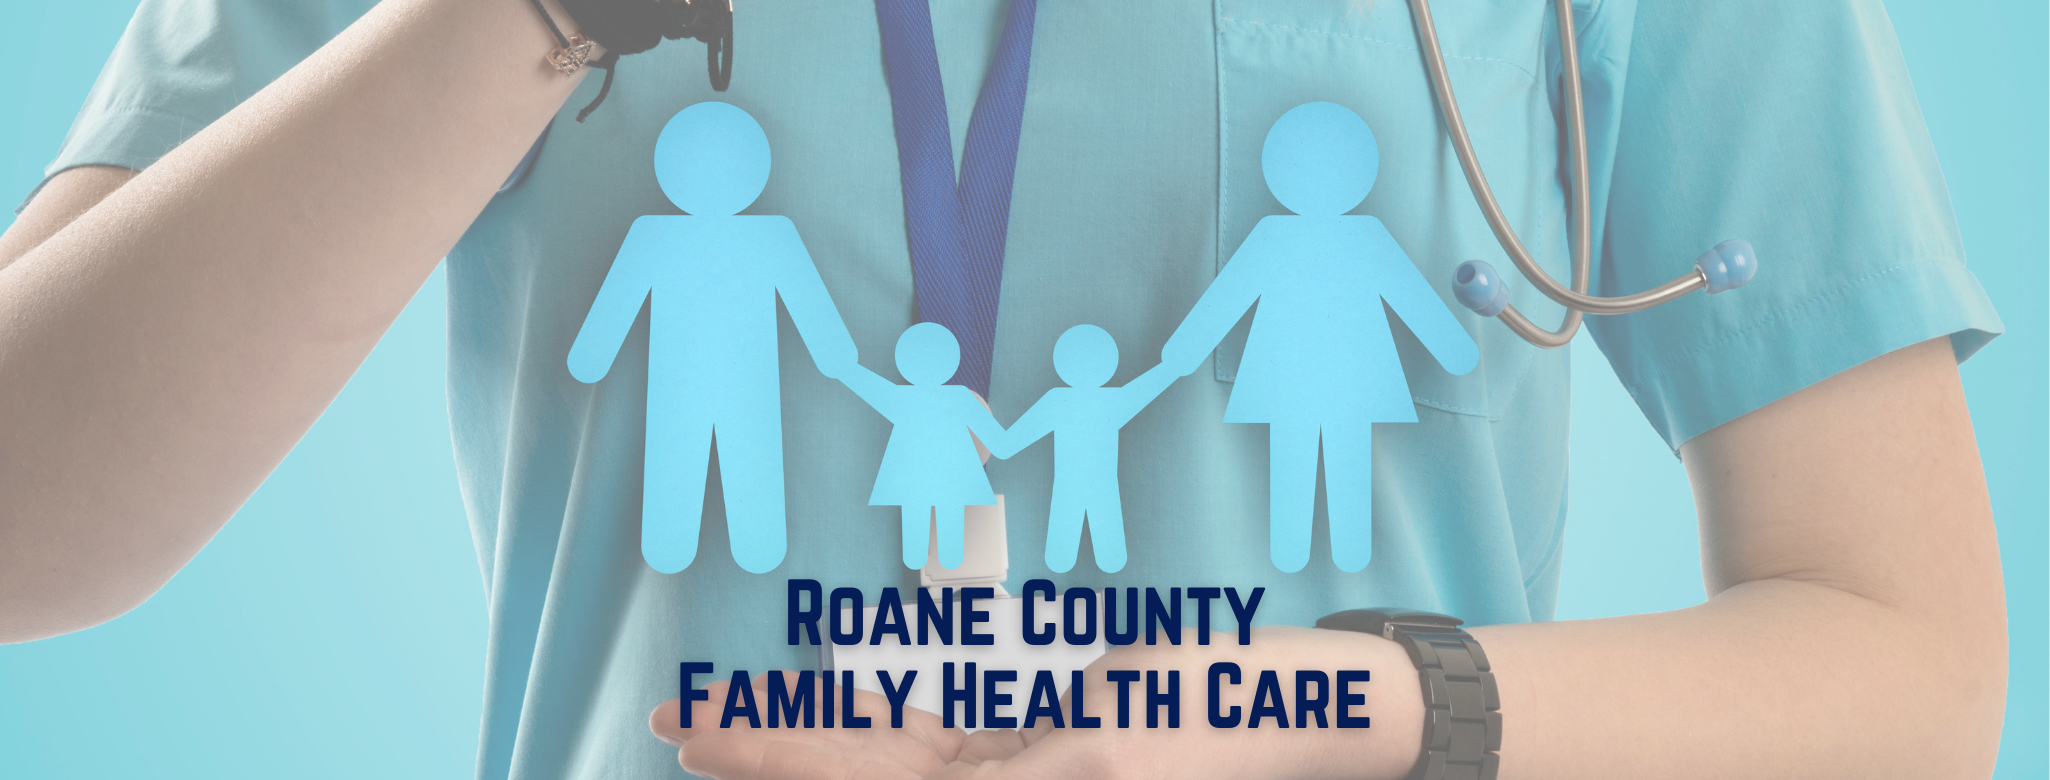 Roane County Family Health Care